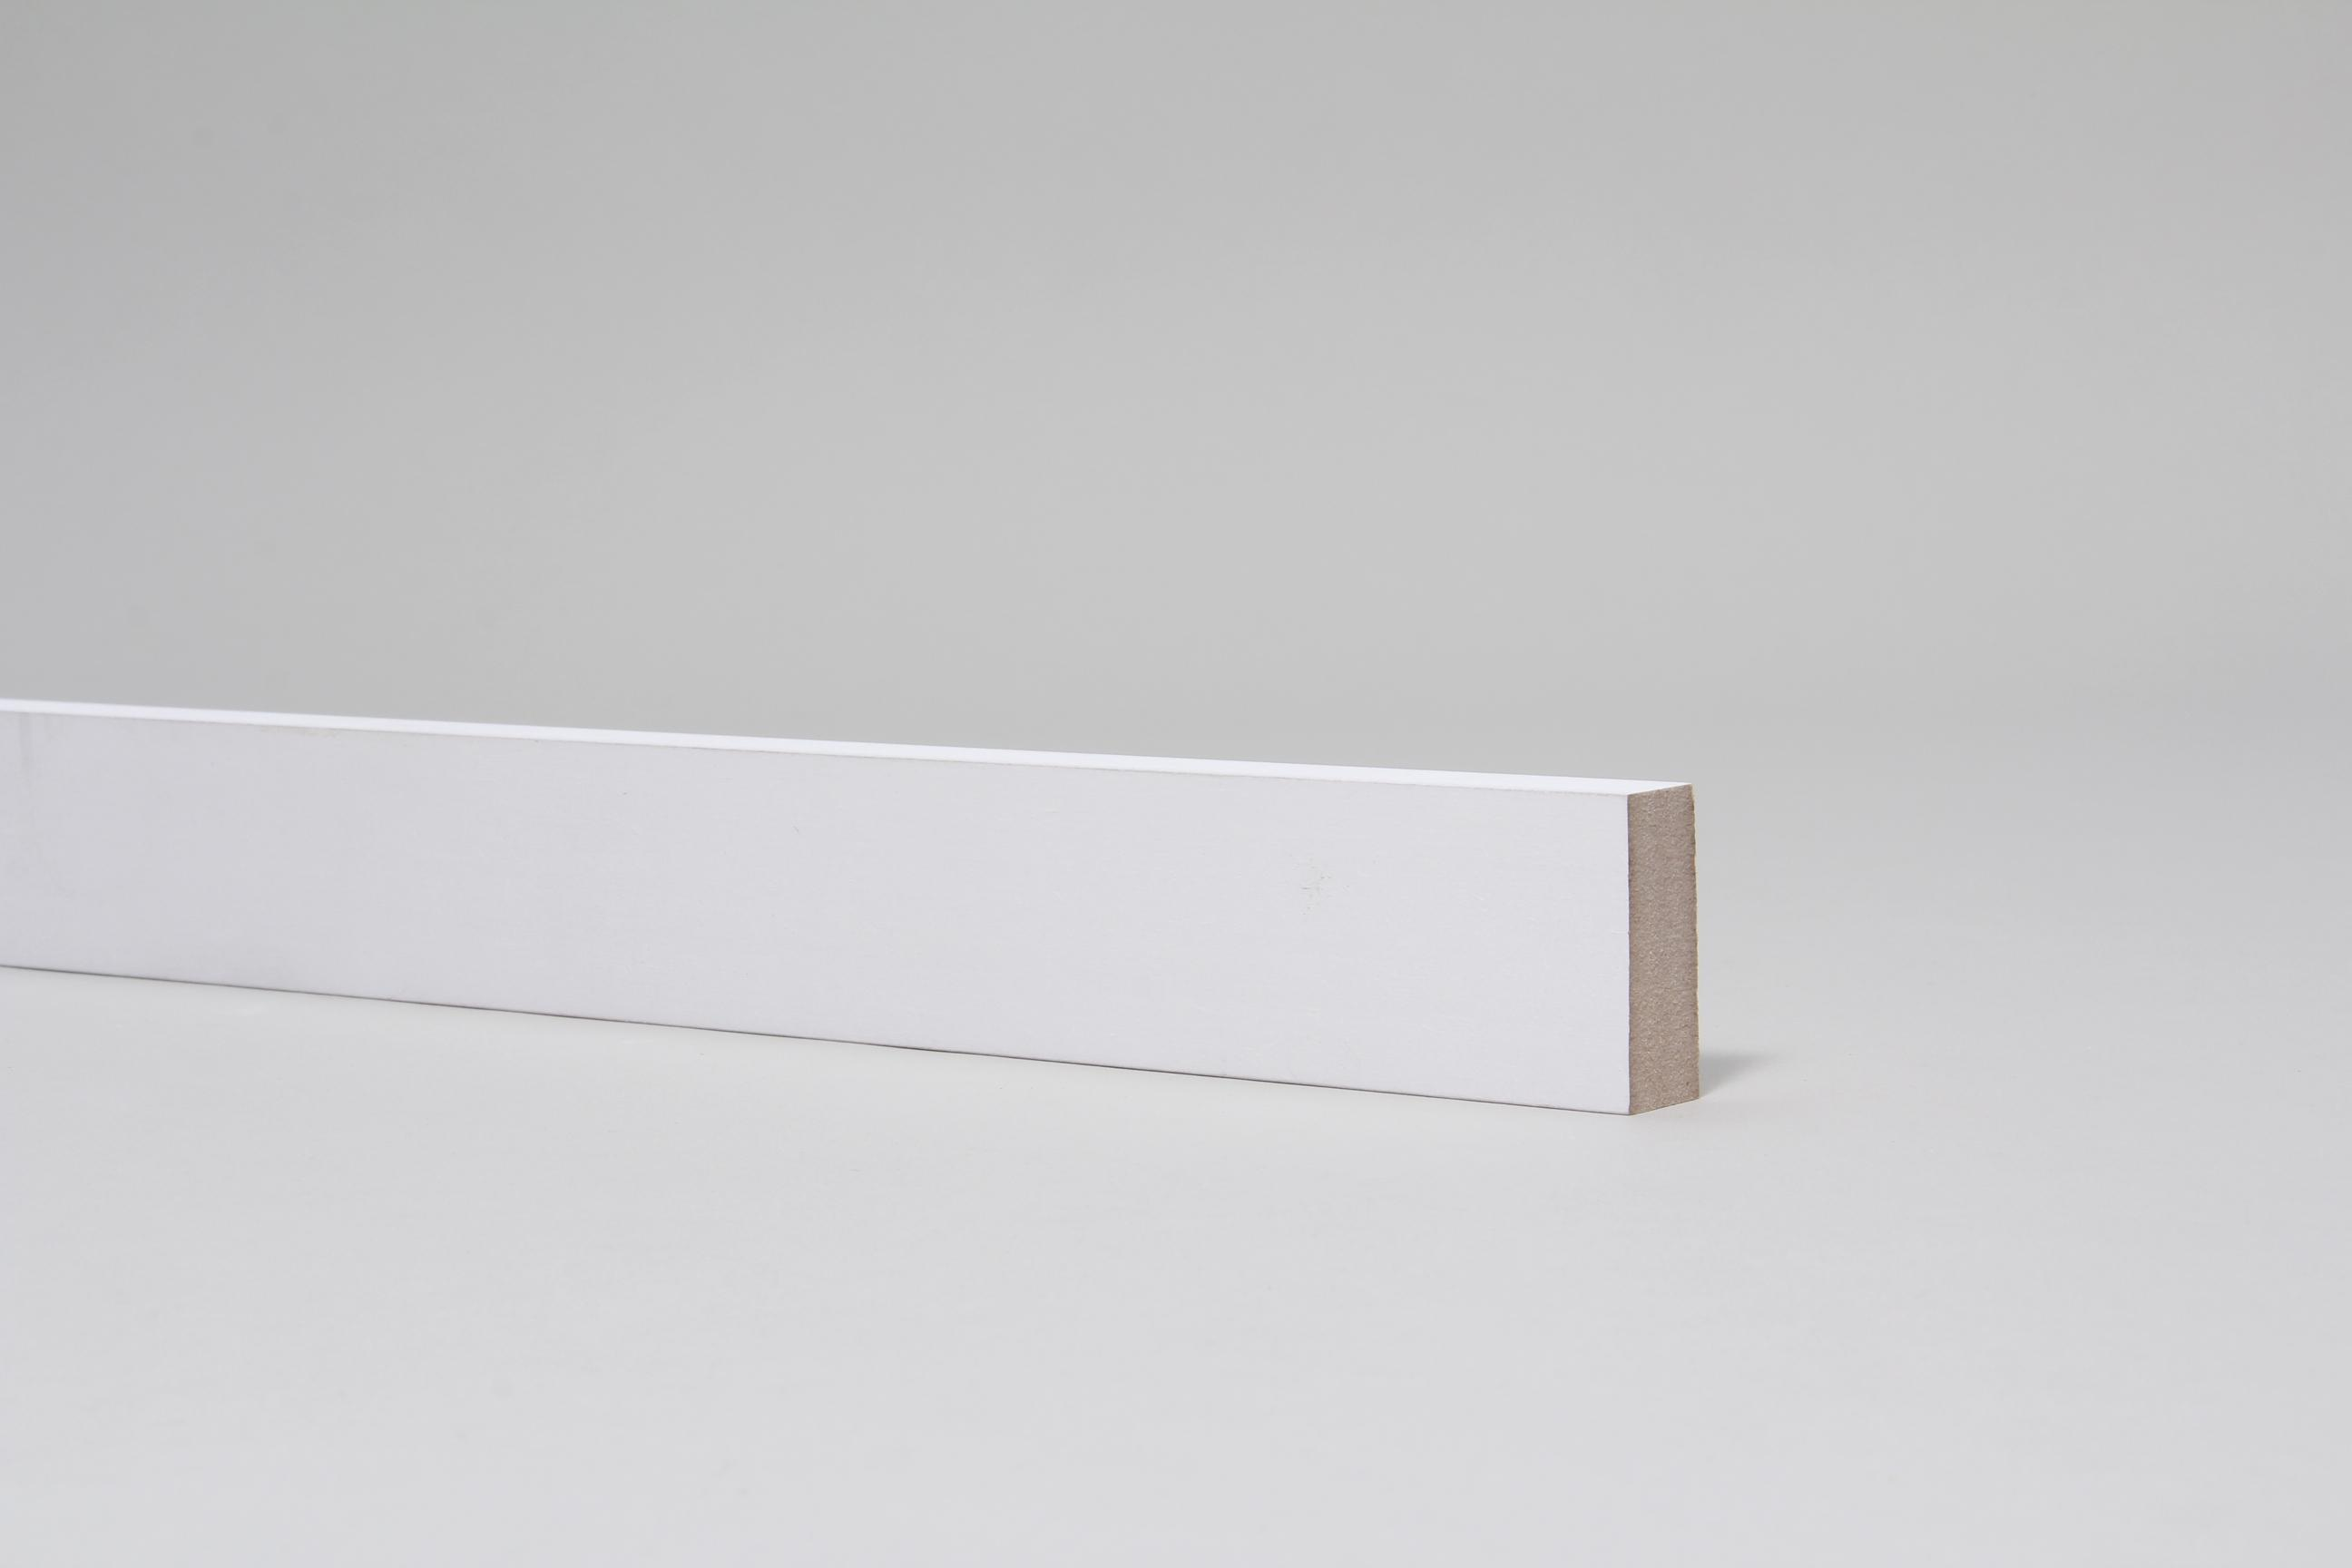 Plain Square Edge 18mm x 44mm x 4.4 Mtr Primed